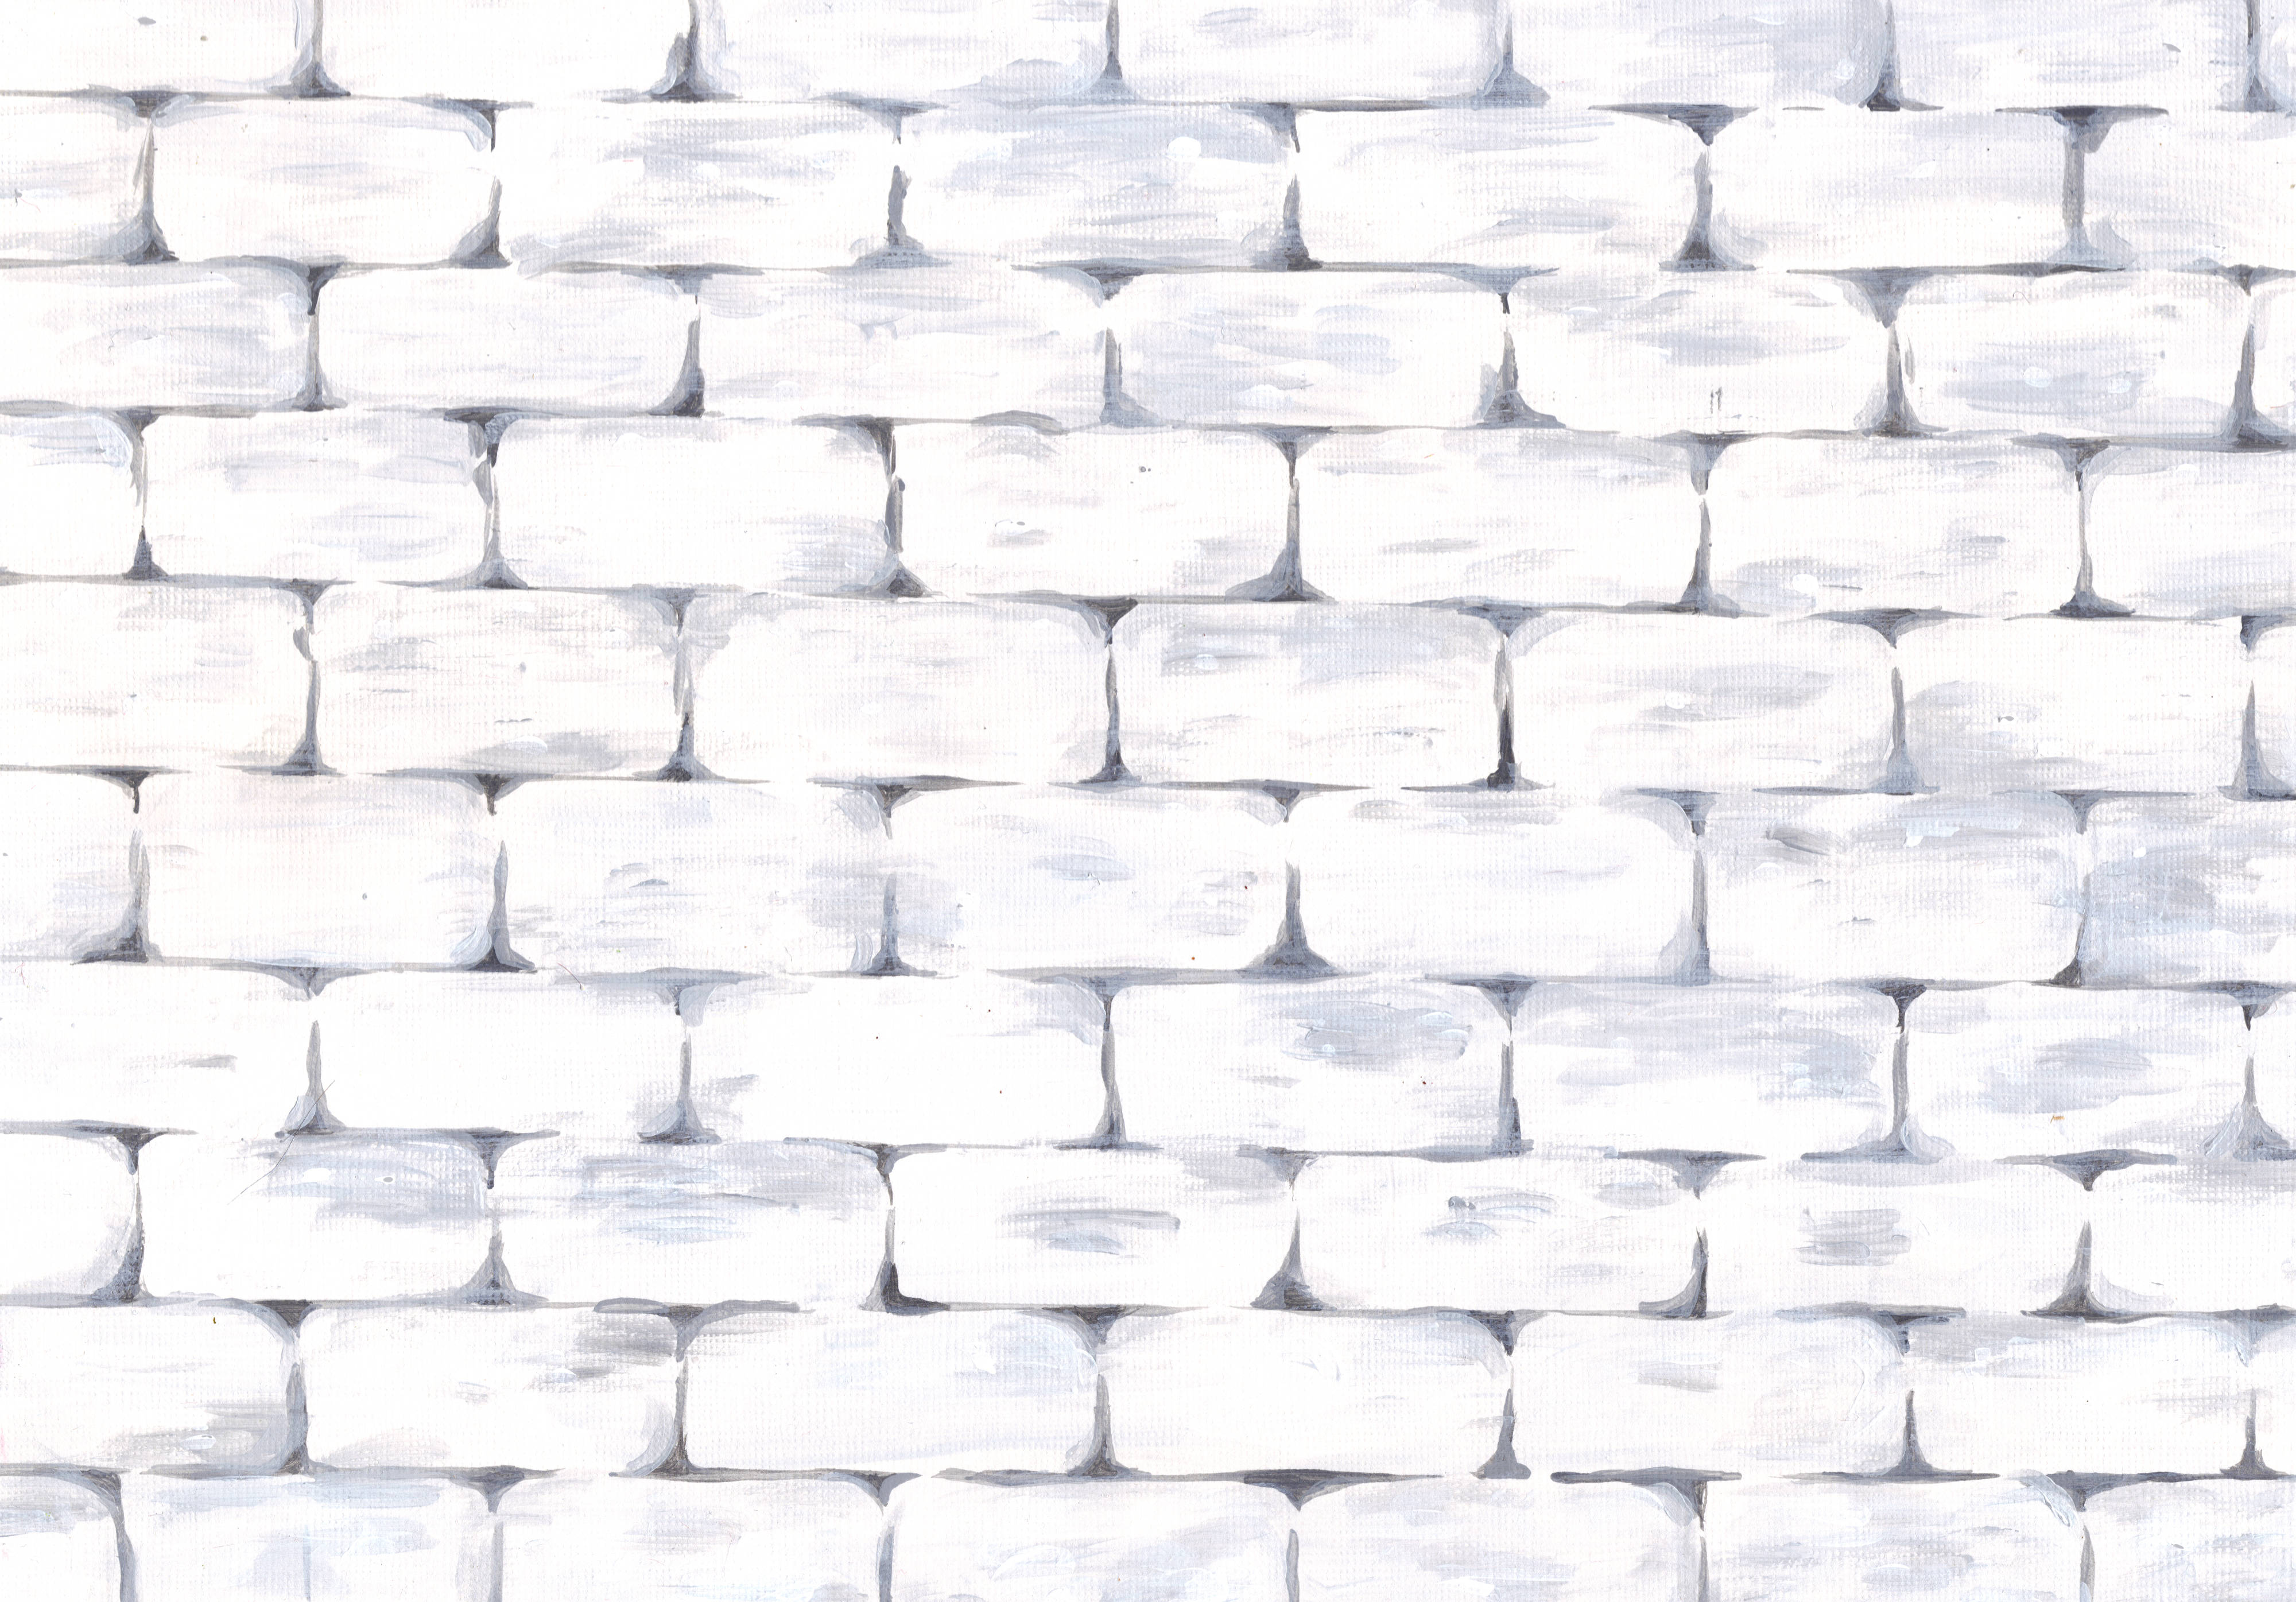 White Brick Wall Paint Texture Background (JPG)   OnlyGFX.com